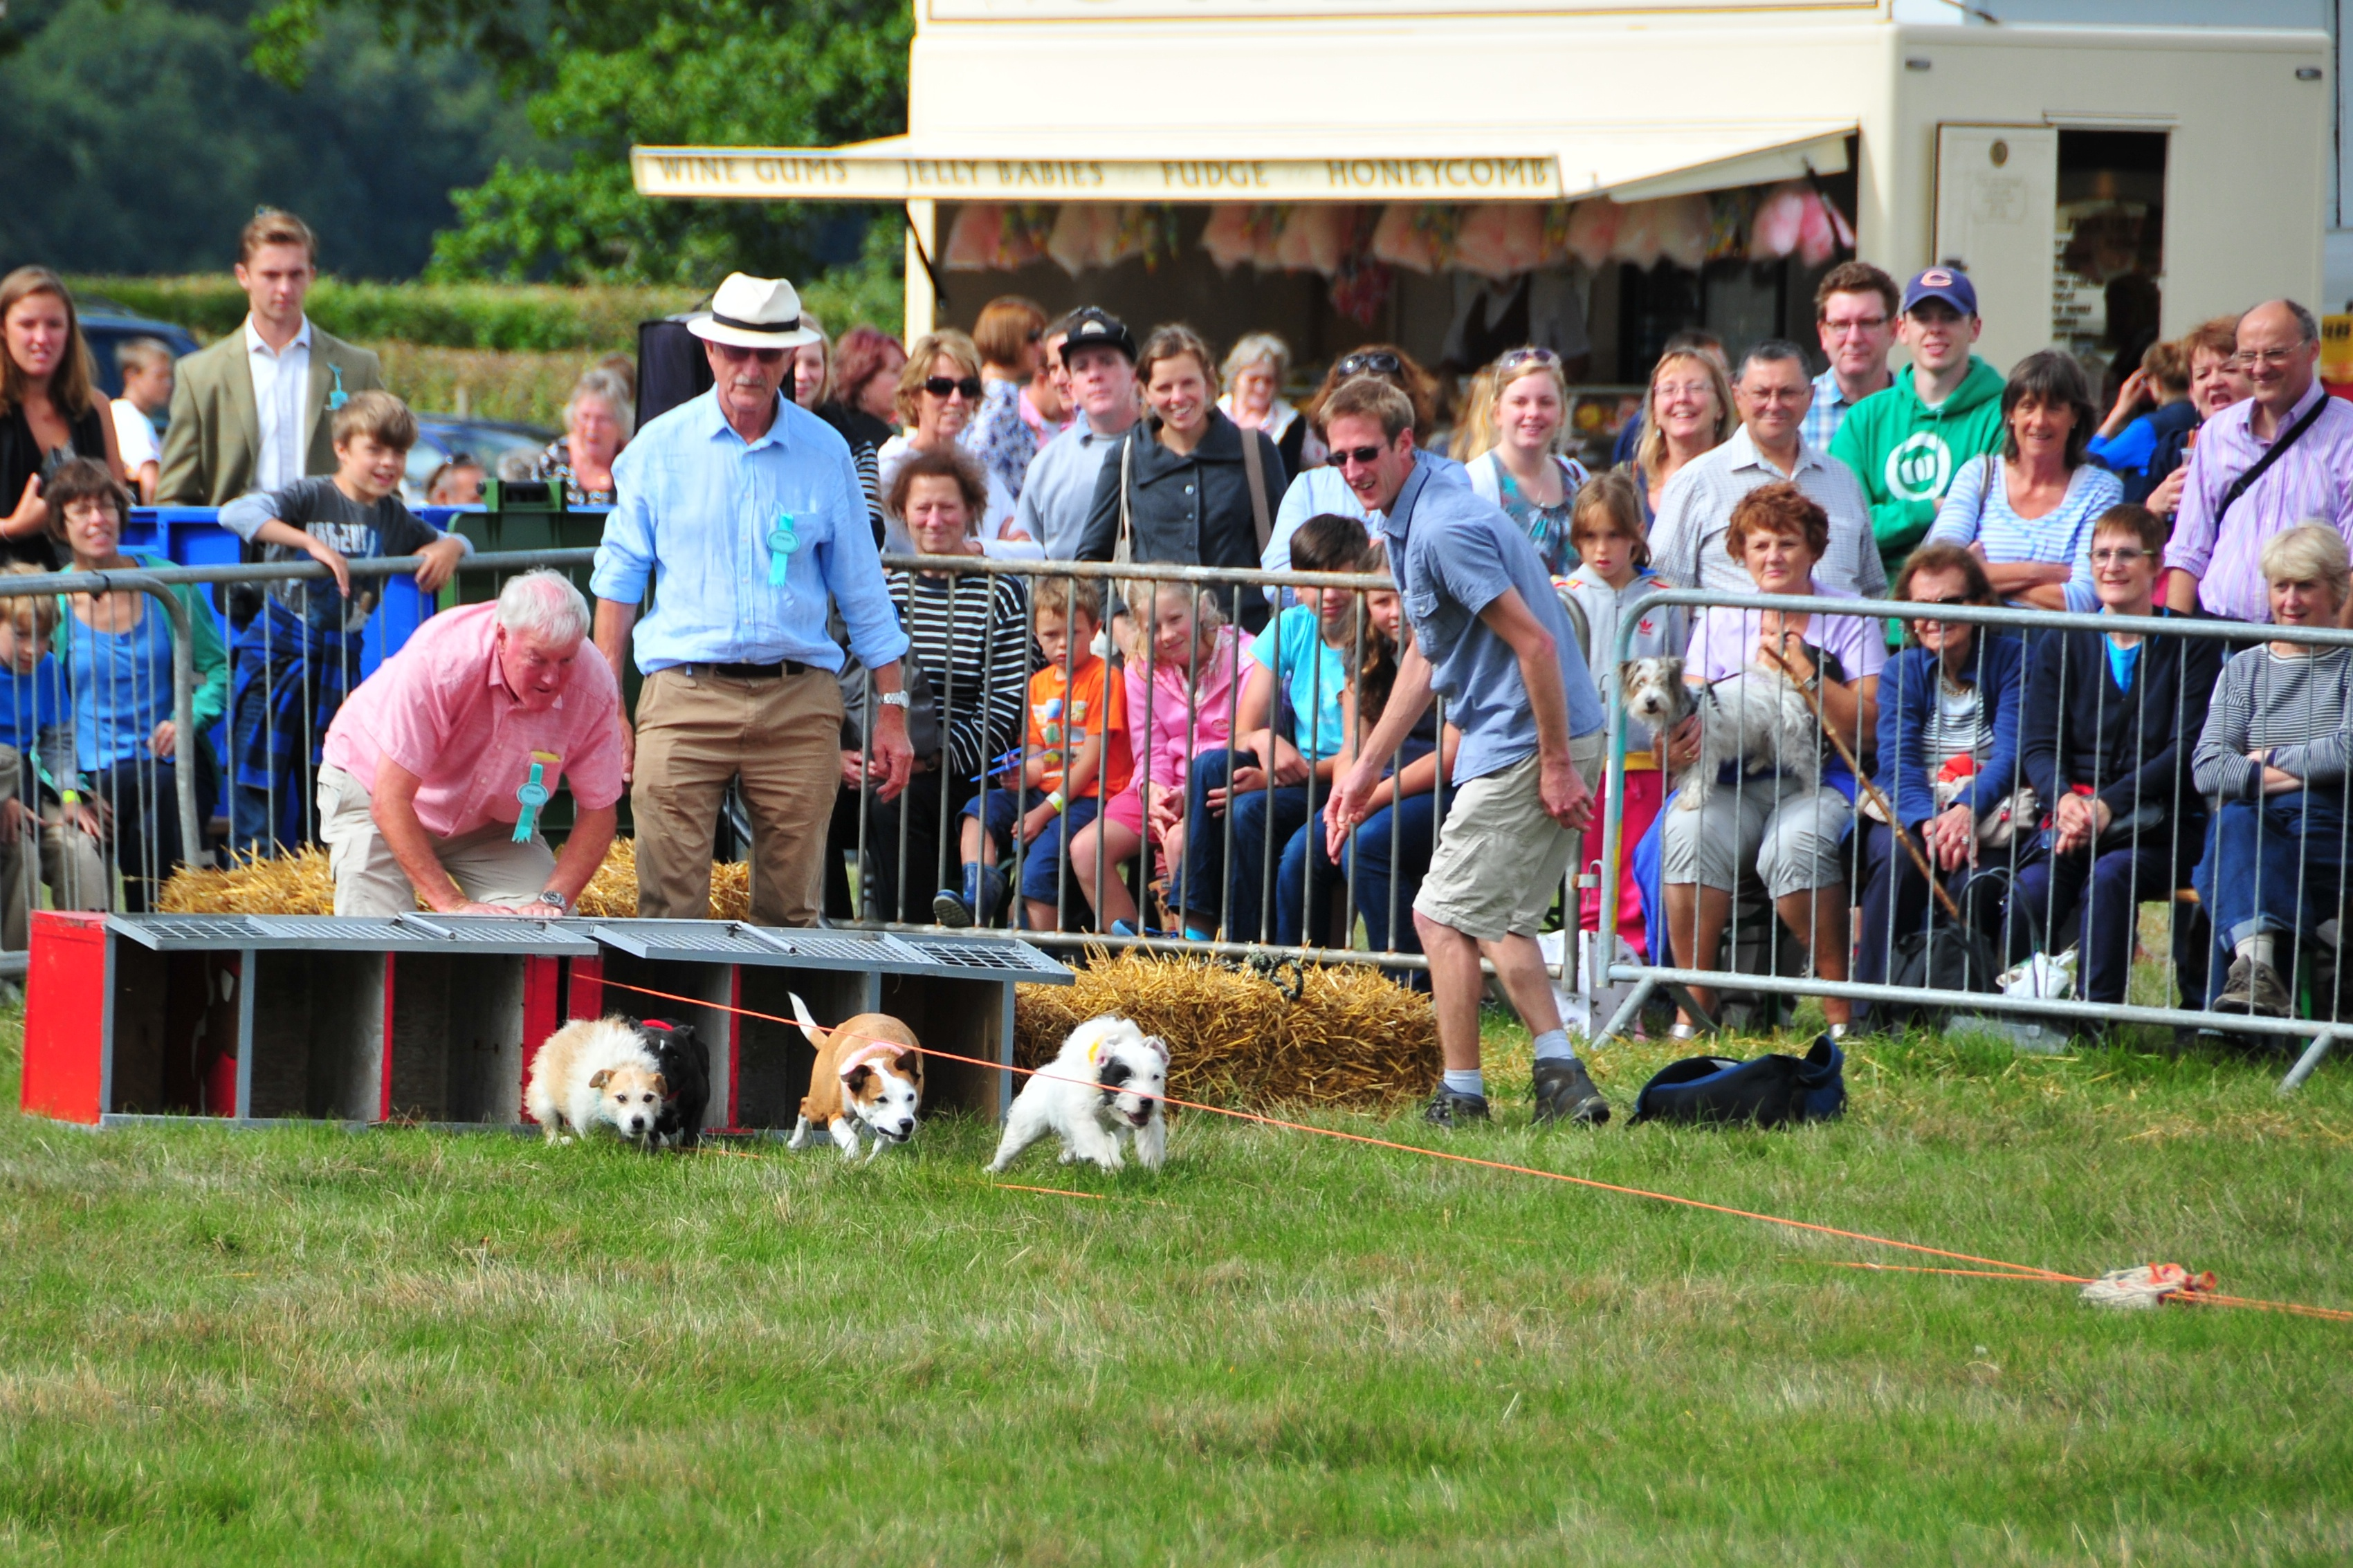 Crowds enjoying the fun at Moreton Show.